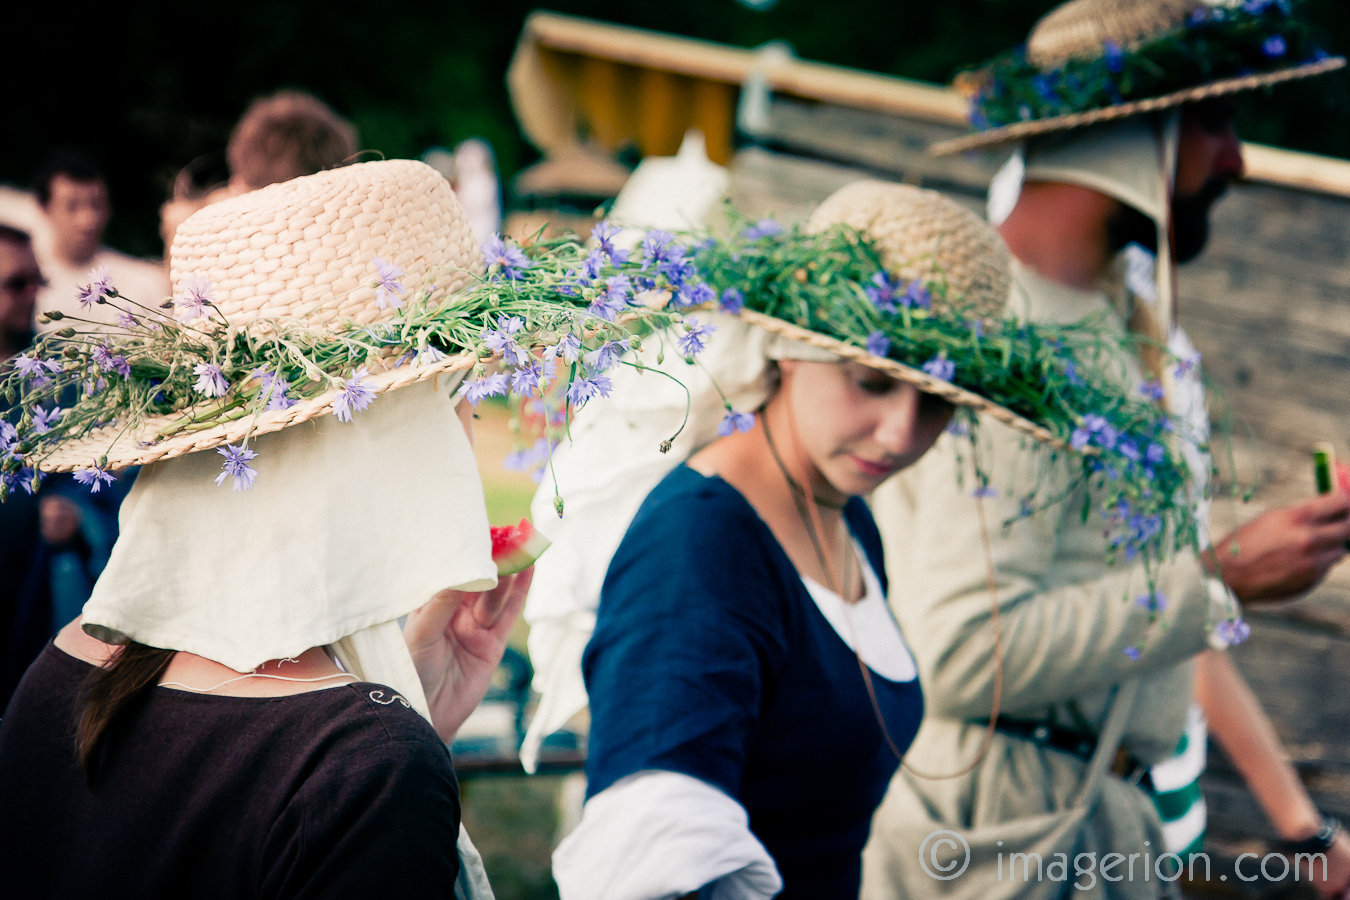 Hats decorated with flowers